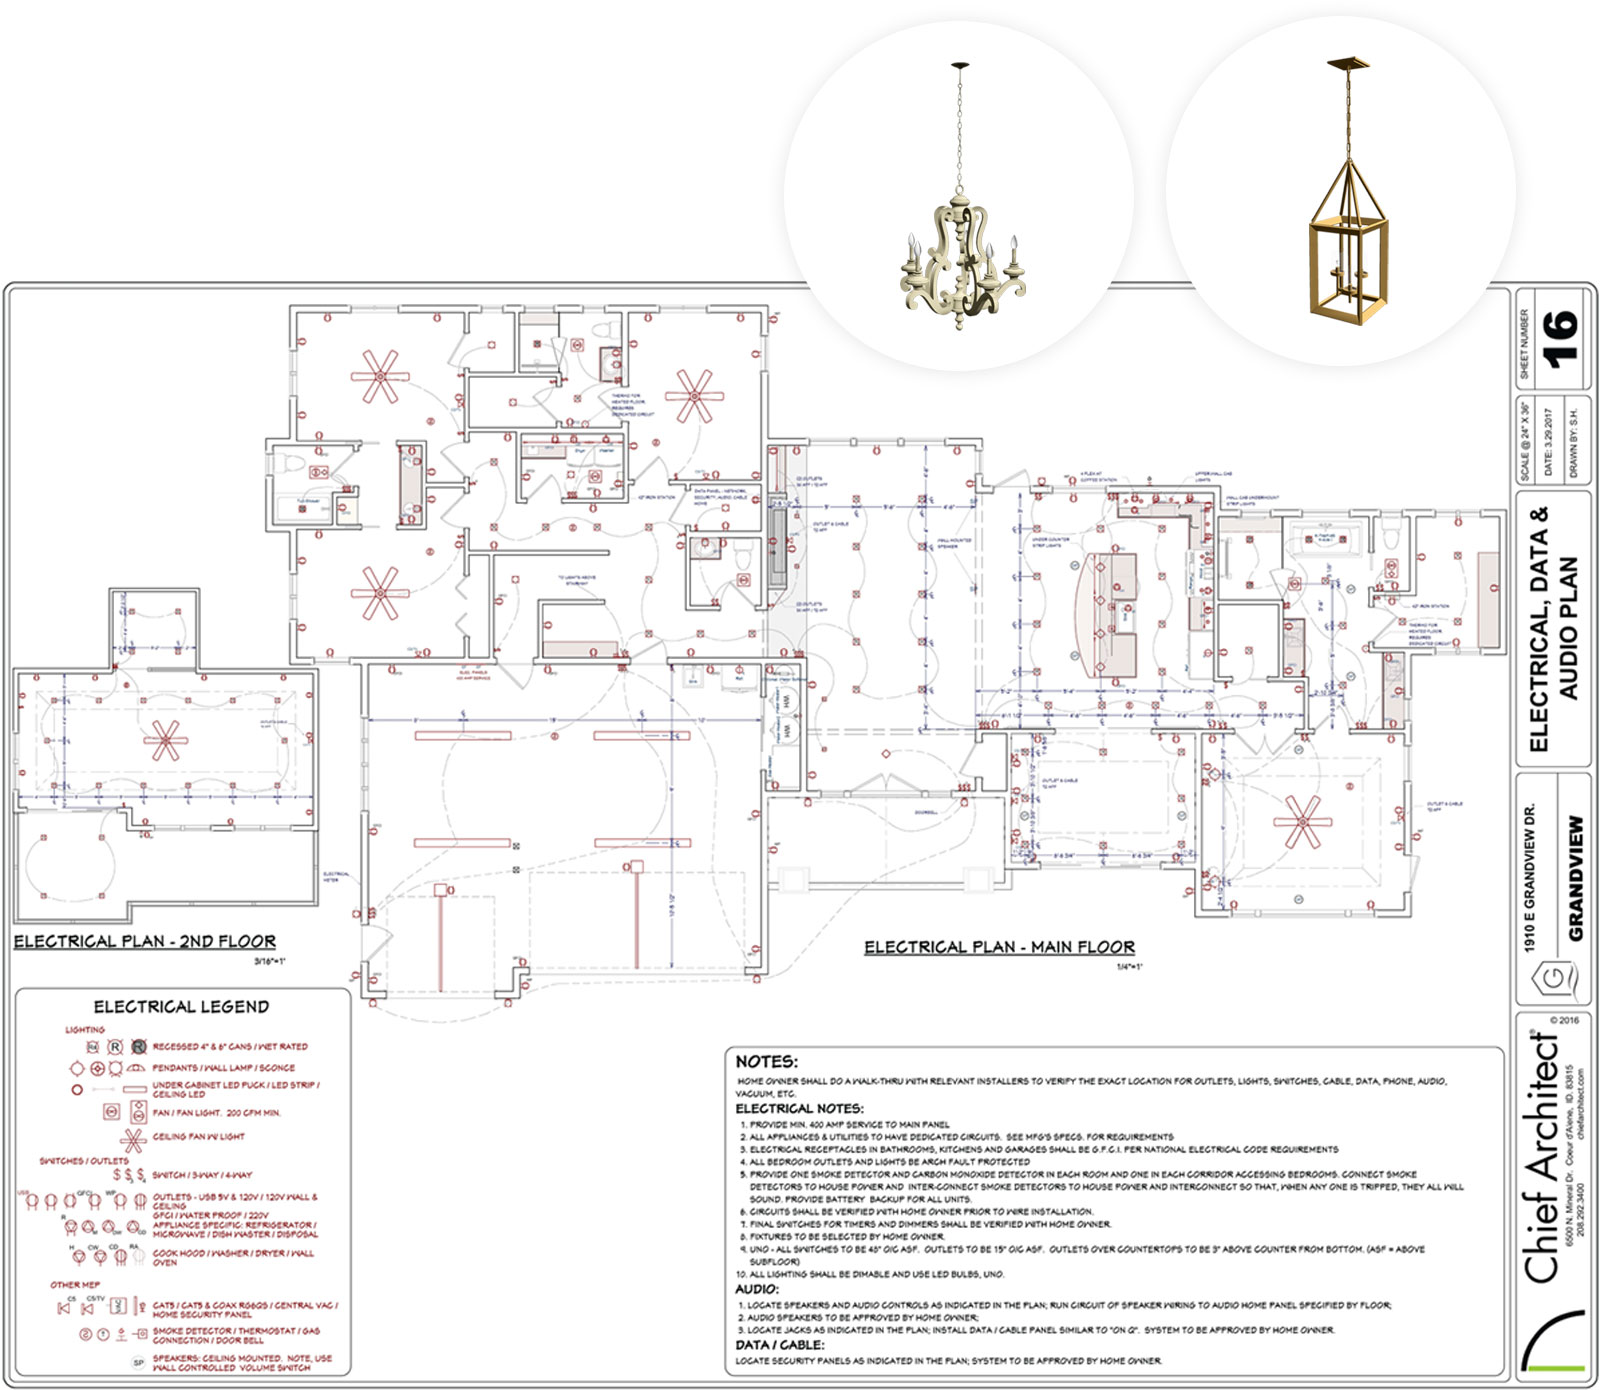 How To Create House Electrical Plan Easily With Regard To: Interior Design Software